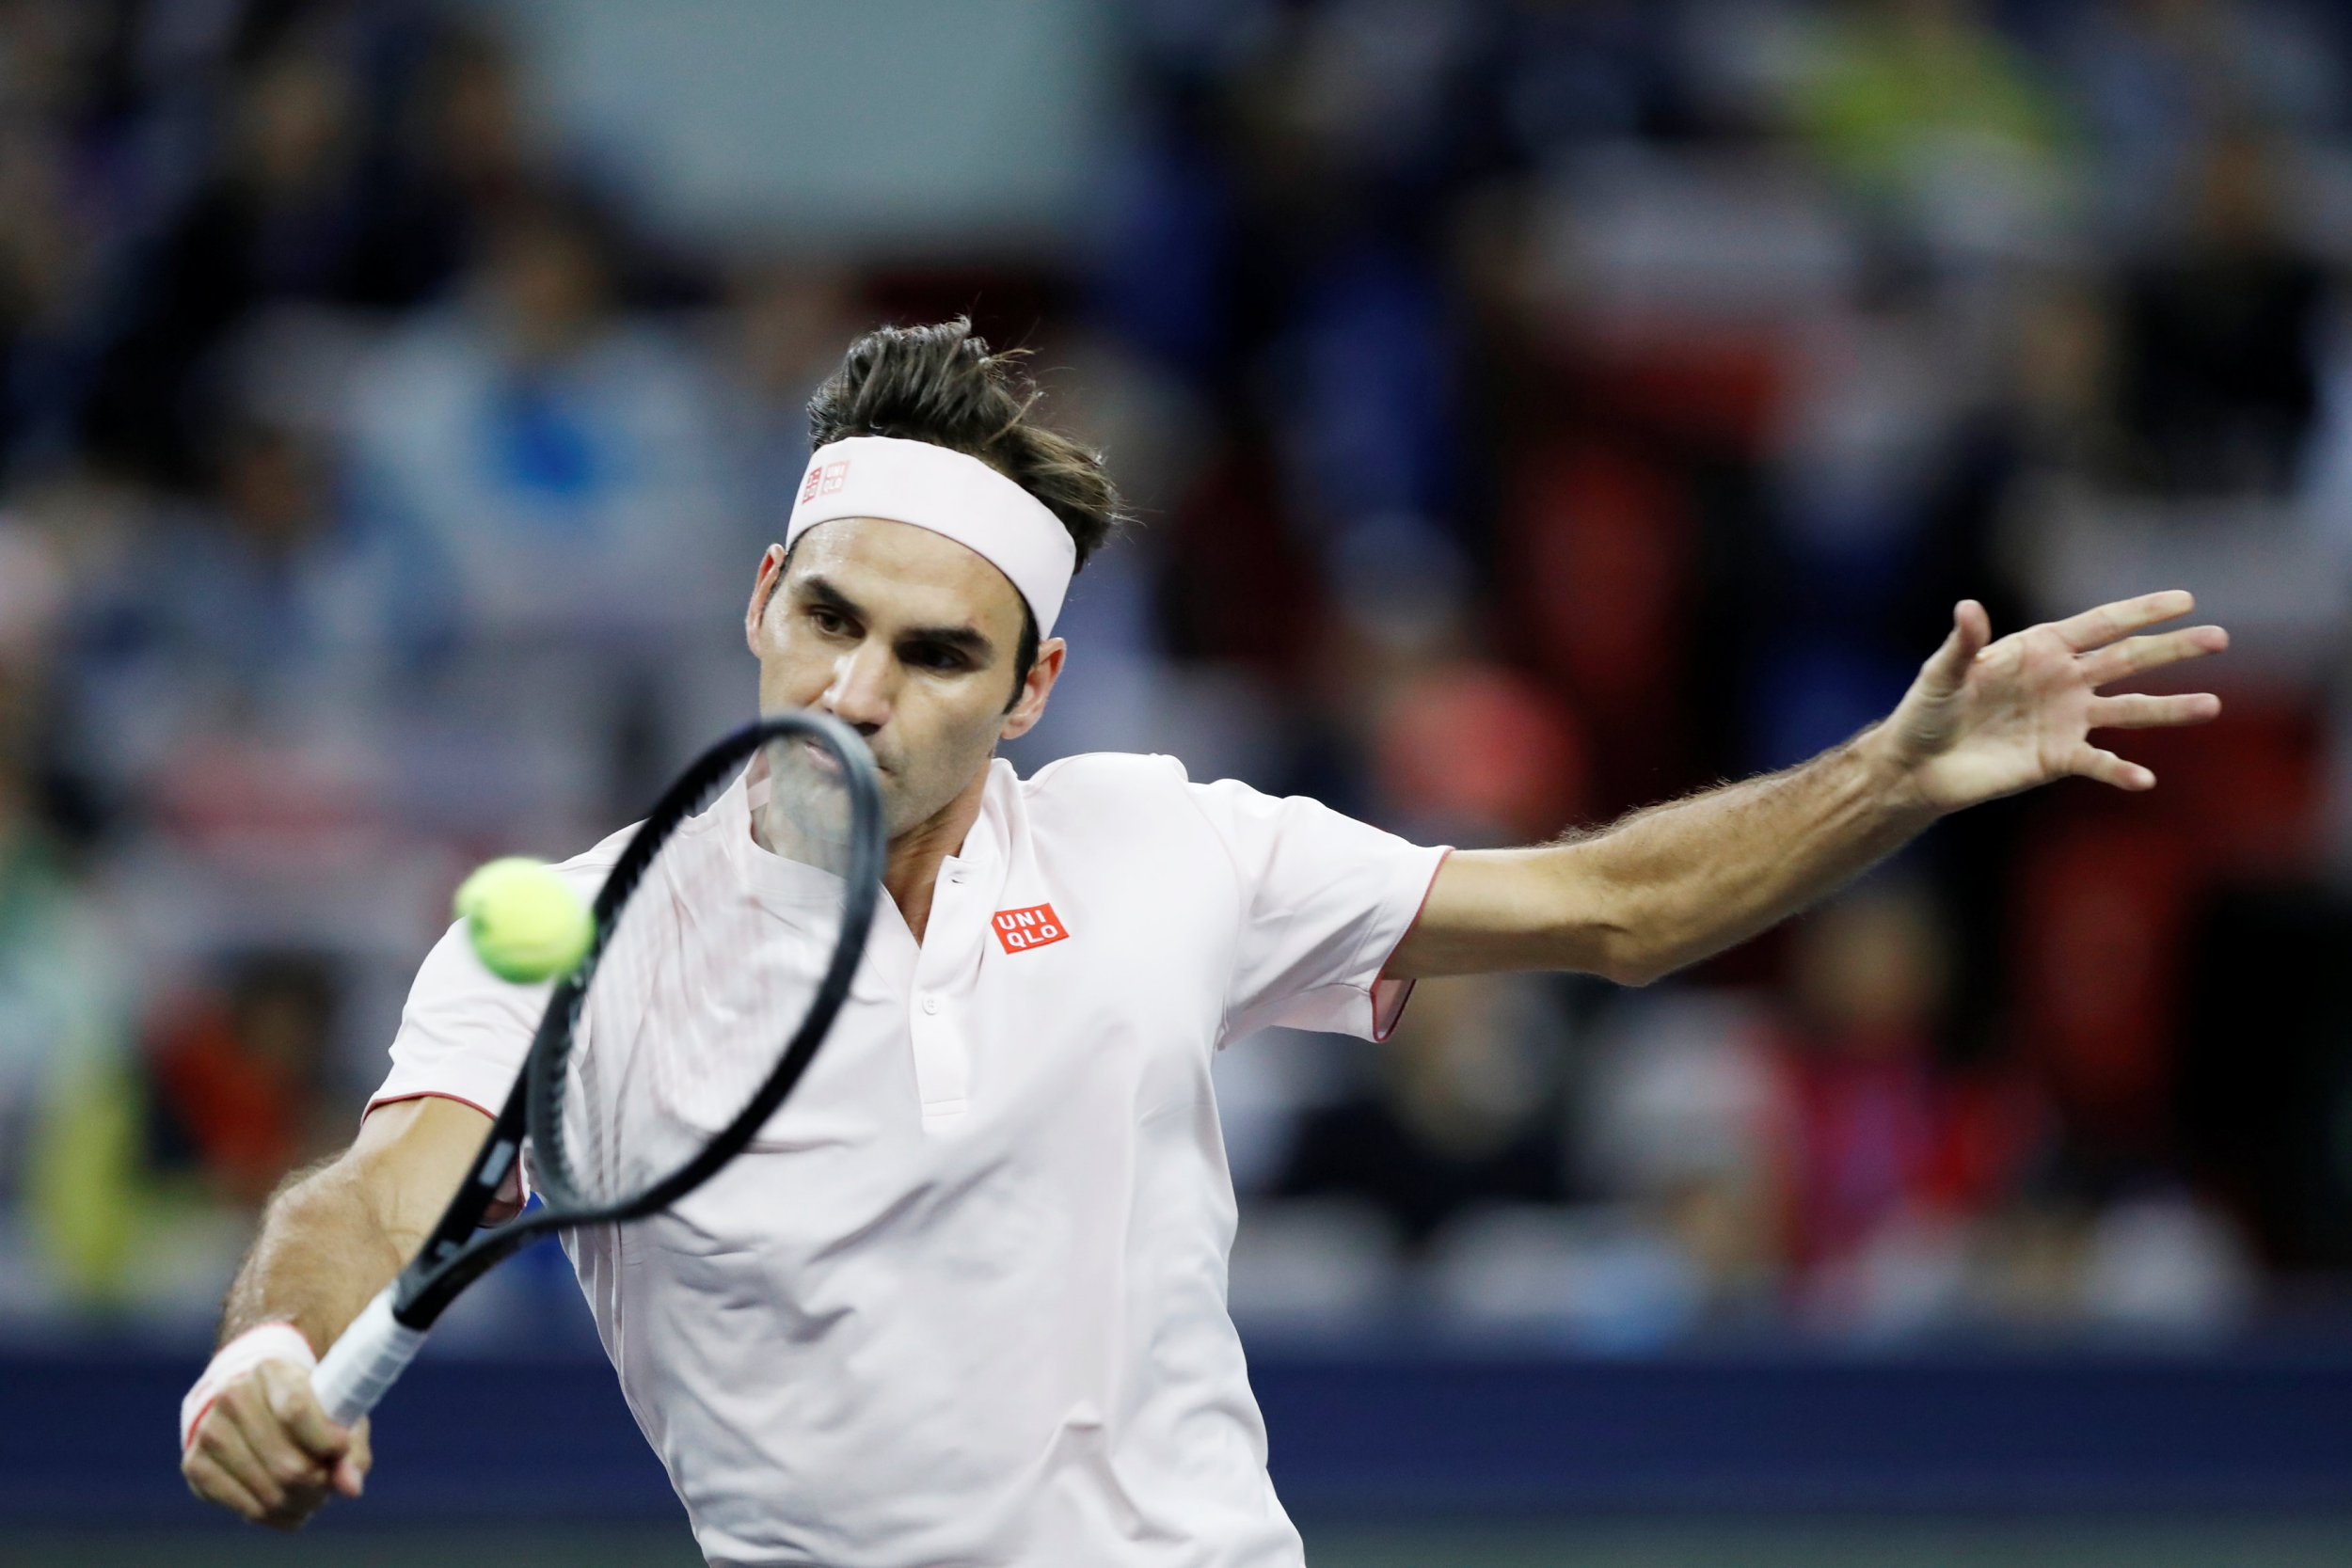 Tennis - Shanghai Masters - Shanghai, China - October 10, 2018 - Roger Federer of Switzerland in action against Daniil Medvedev of Russia. REUTERS/Aly Song